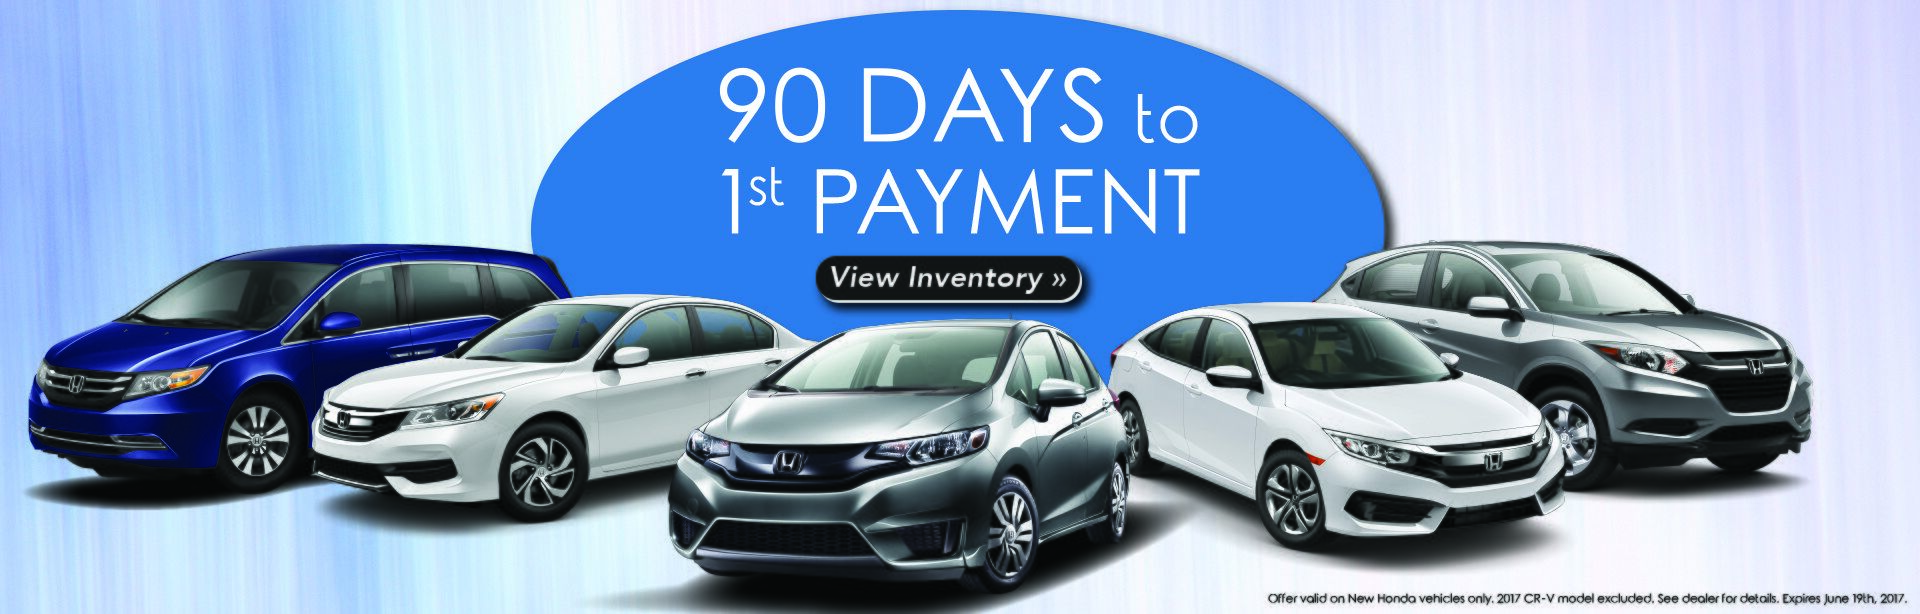 90 Days to 1st Payment